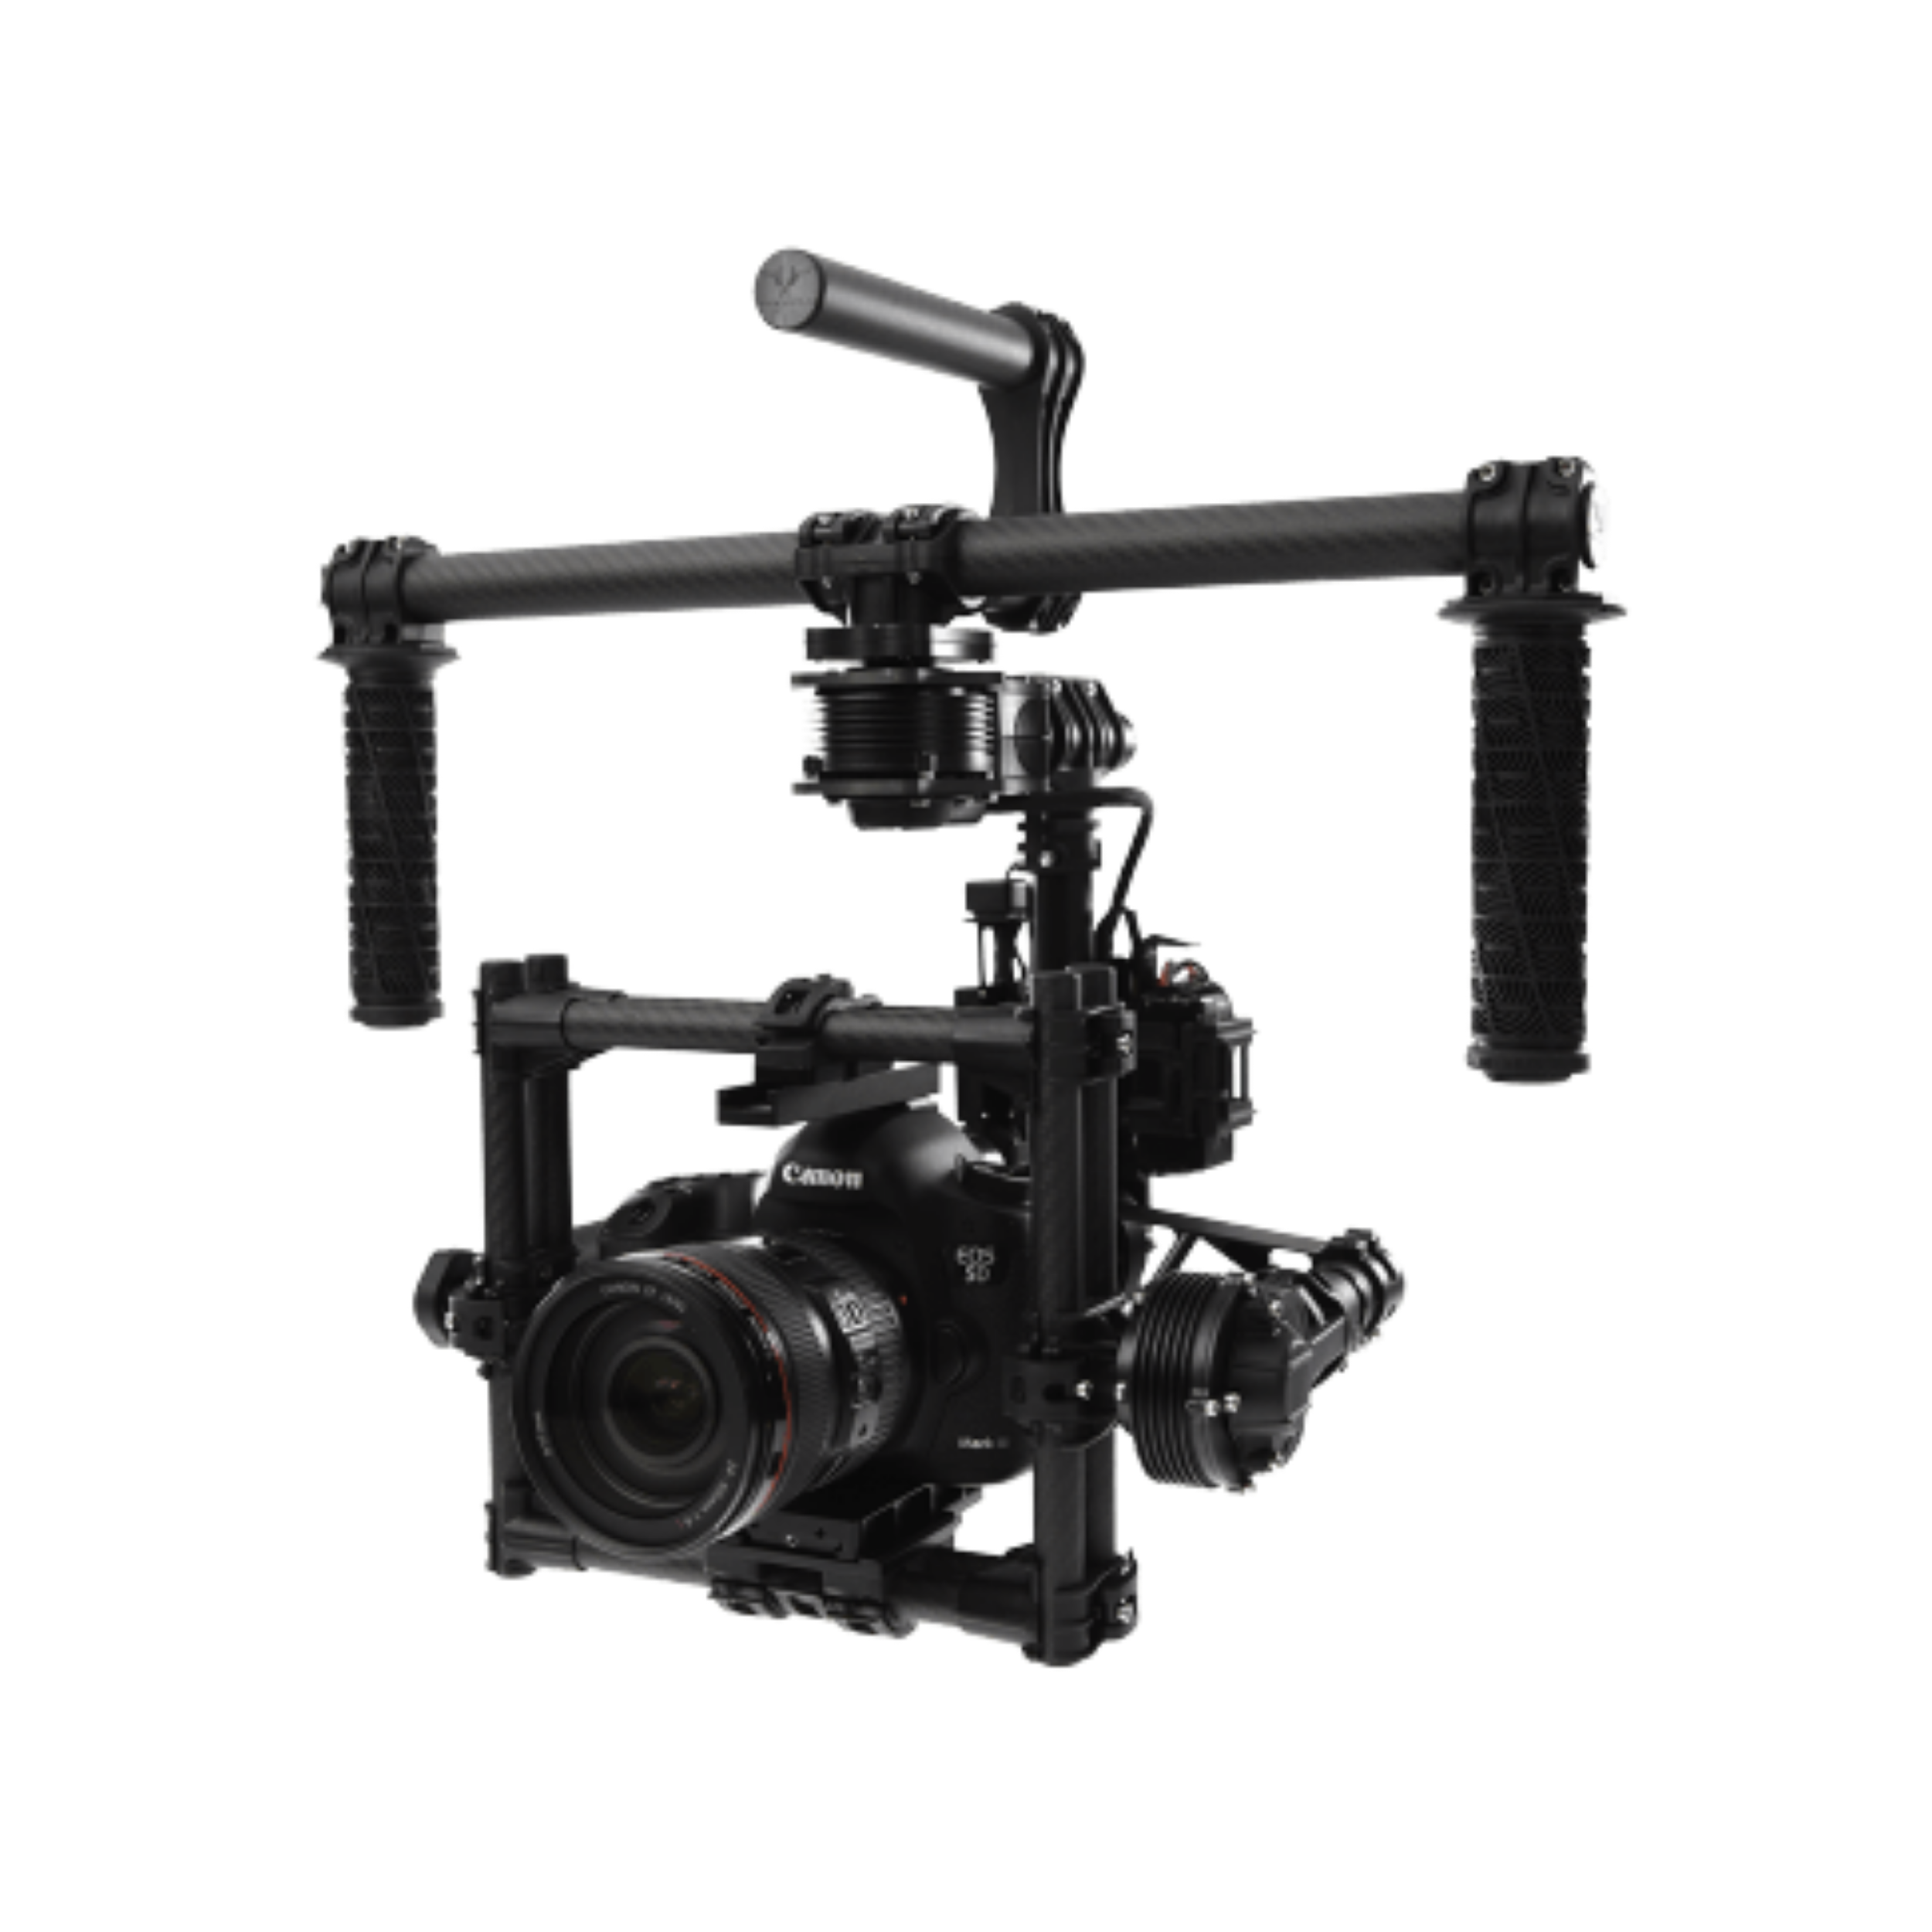 Freefly Movi M5 Gimbal and Canon 5D Camera